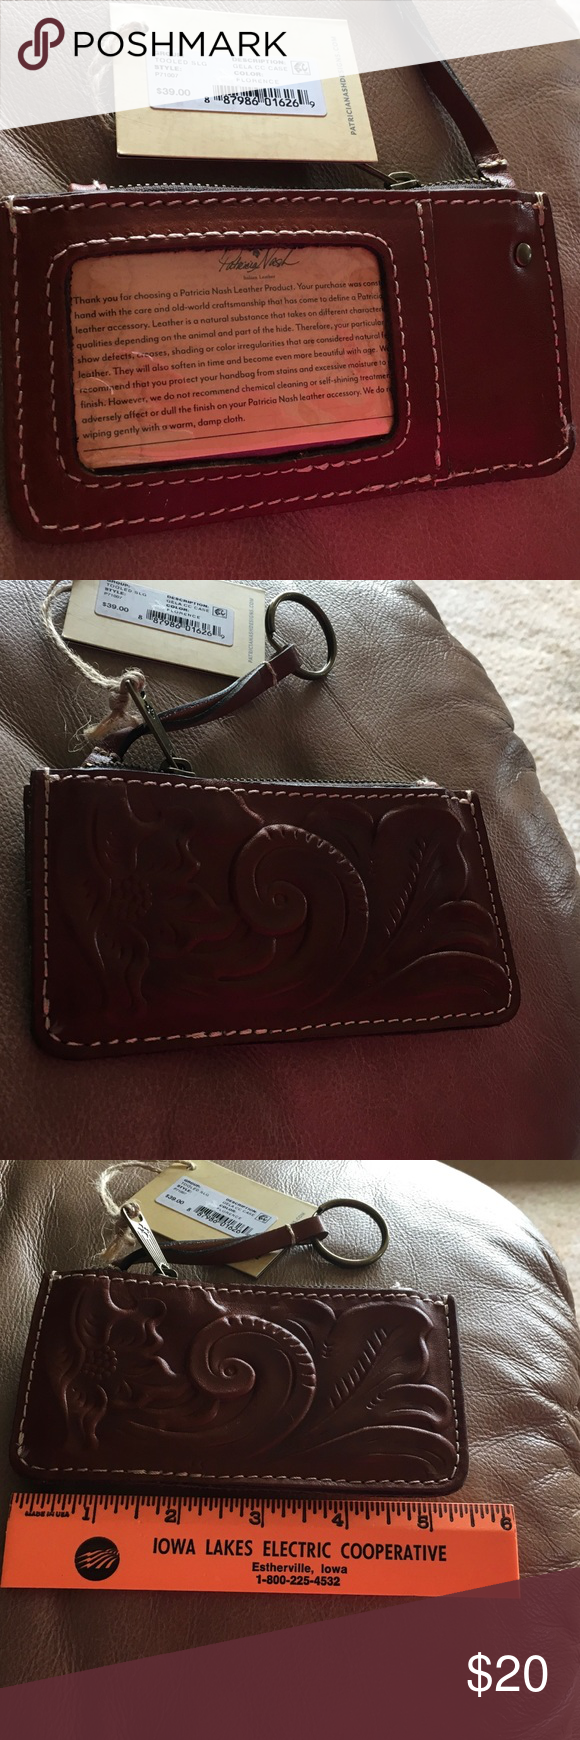 Patricia Nash key chain & coin purse Beautiful tooled Italian Leather. See measurements in photos Patricia Nash Accessories Key & Card Holders